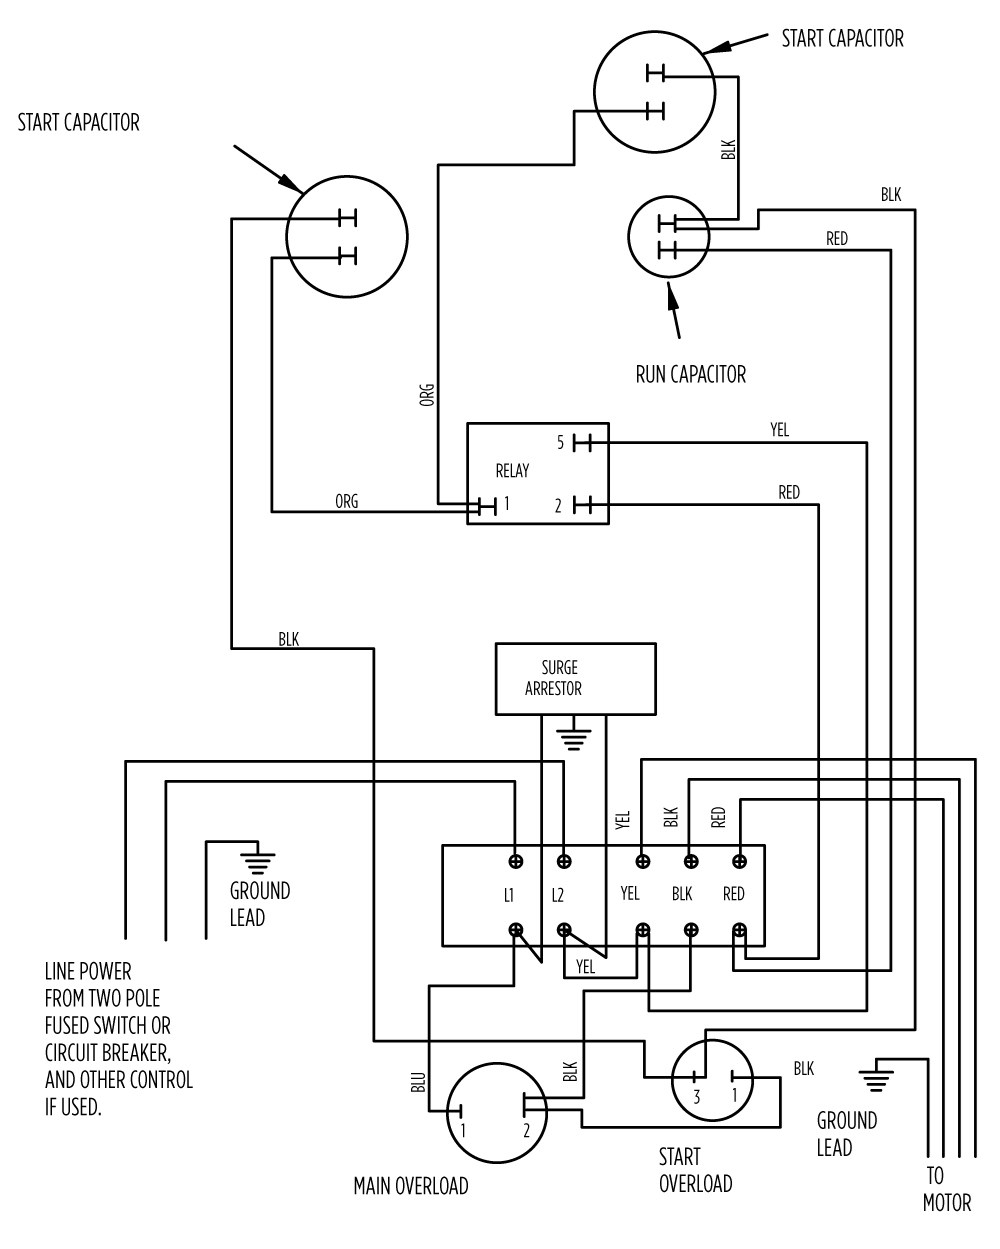 75 hp standard 282 201 9210_aim gallery?format=jpg&quality=80 aim manual page 56 single phase motors and controls motor duplex pump control panel wiring diagram at readyjetset.co